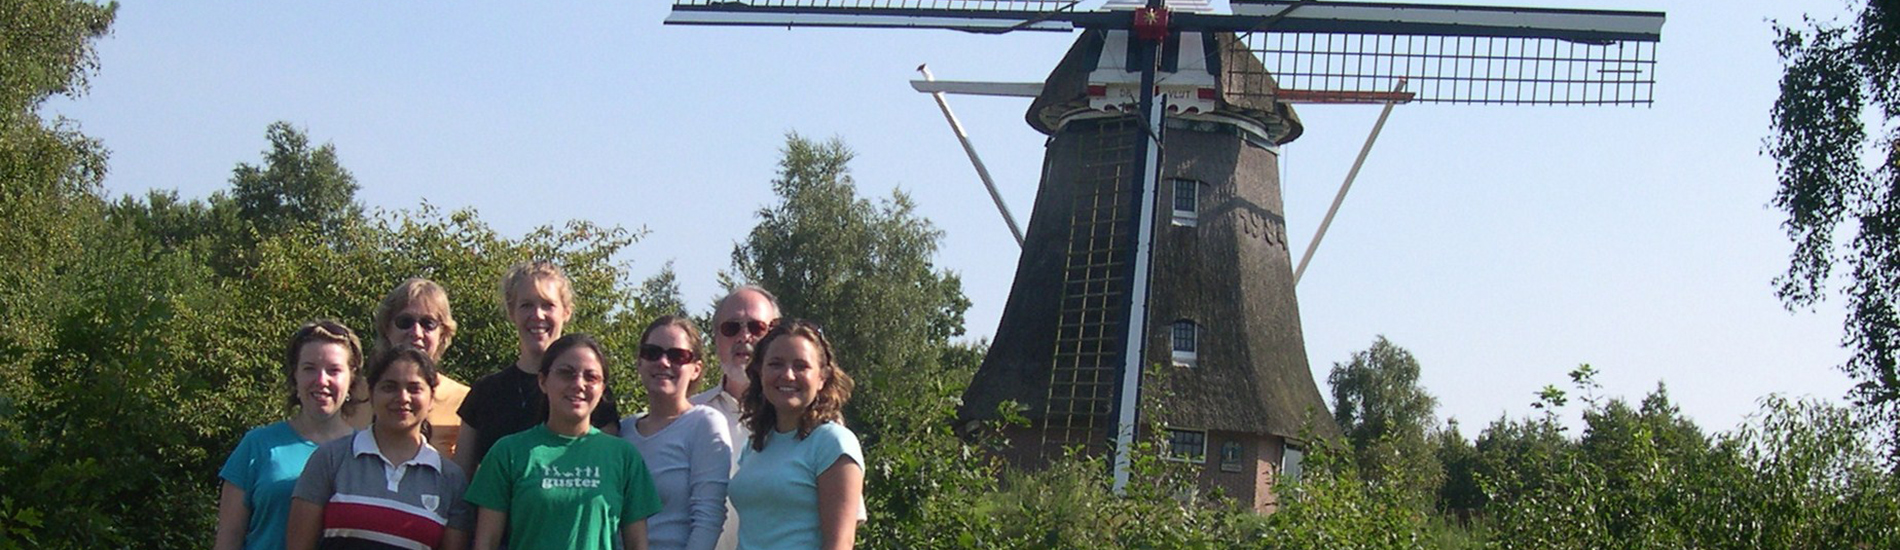 Windmill with team